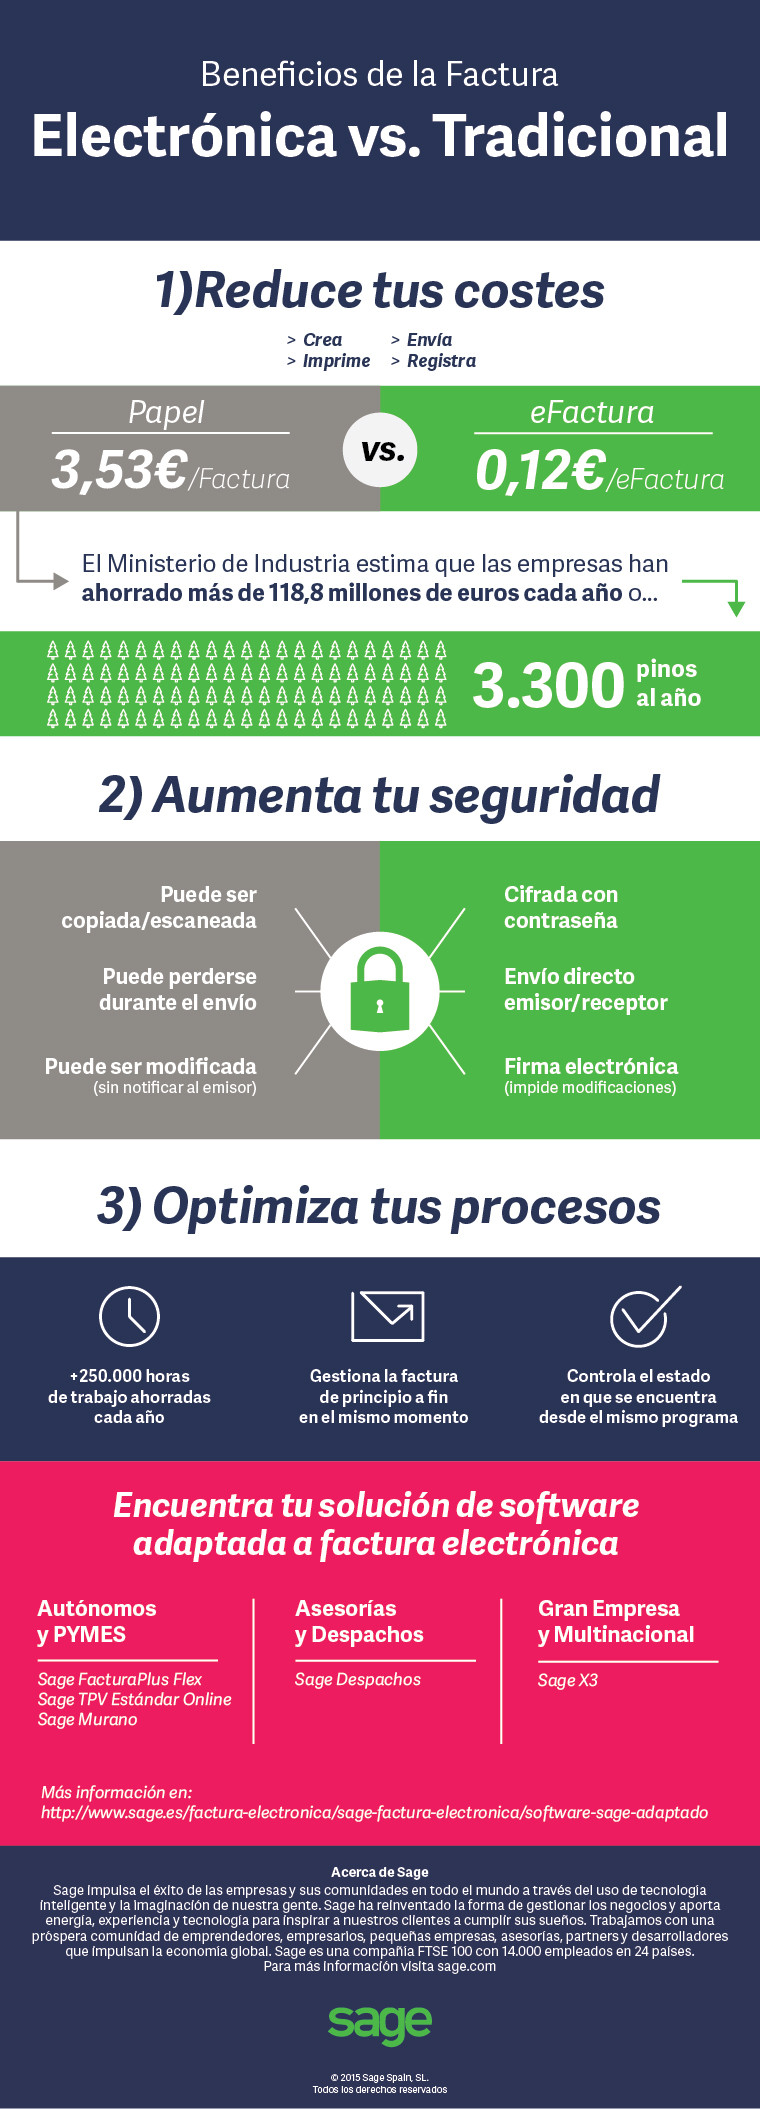 Infografia - Beneficios de Factura Electronica vs. Tradicional 760 (2)